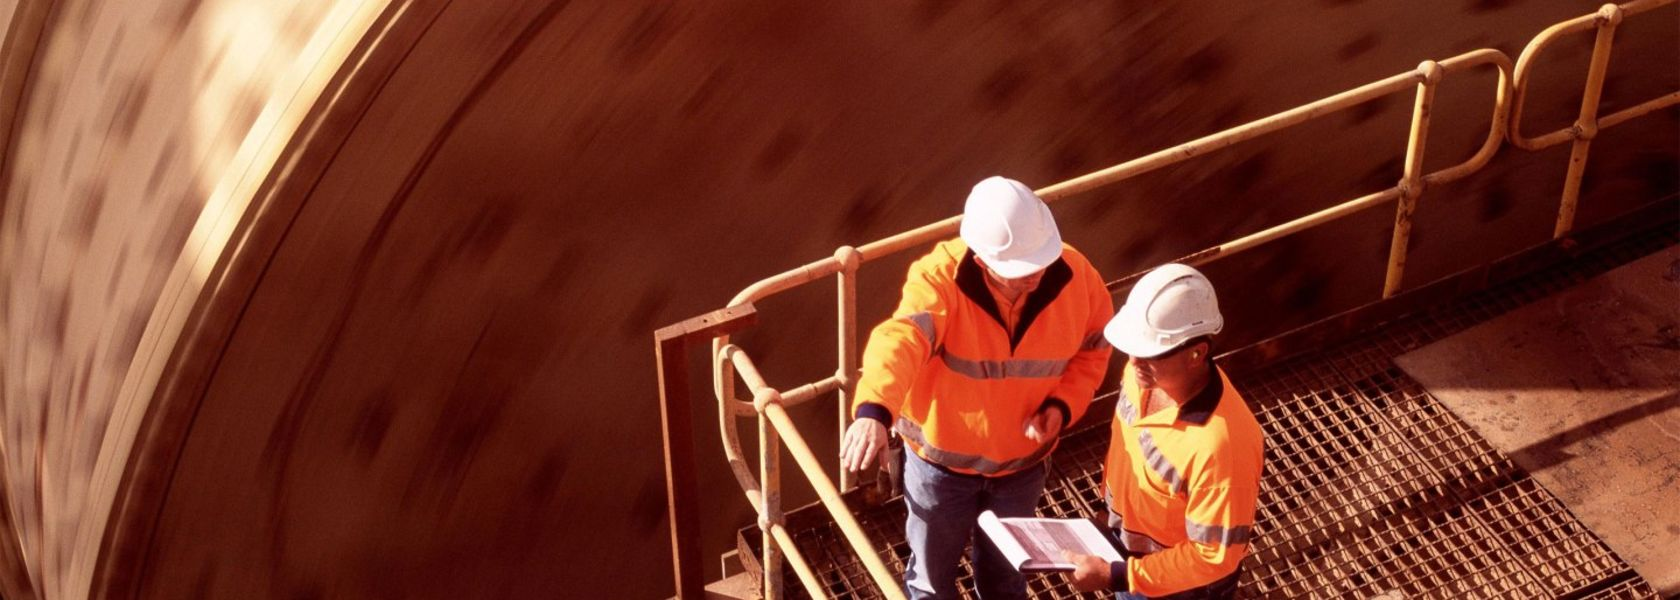 Tech to impact mining risk management, FoM Americas hears